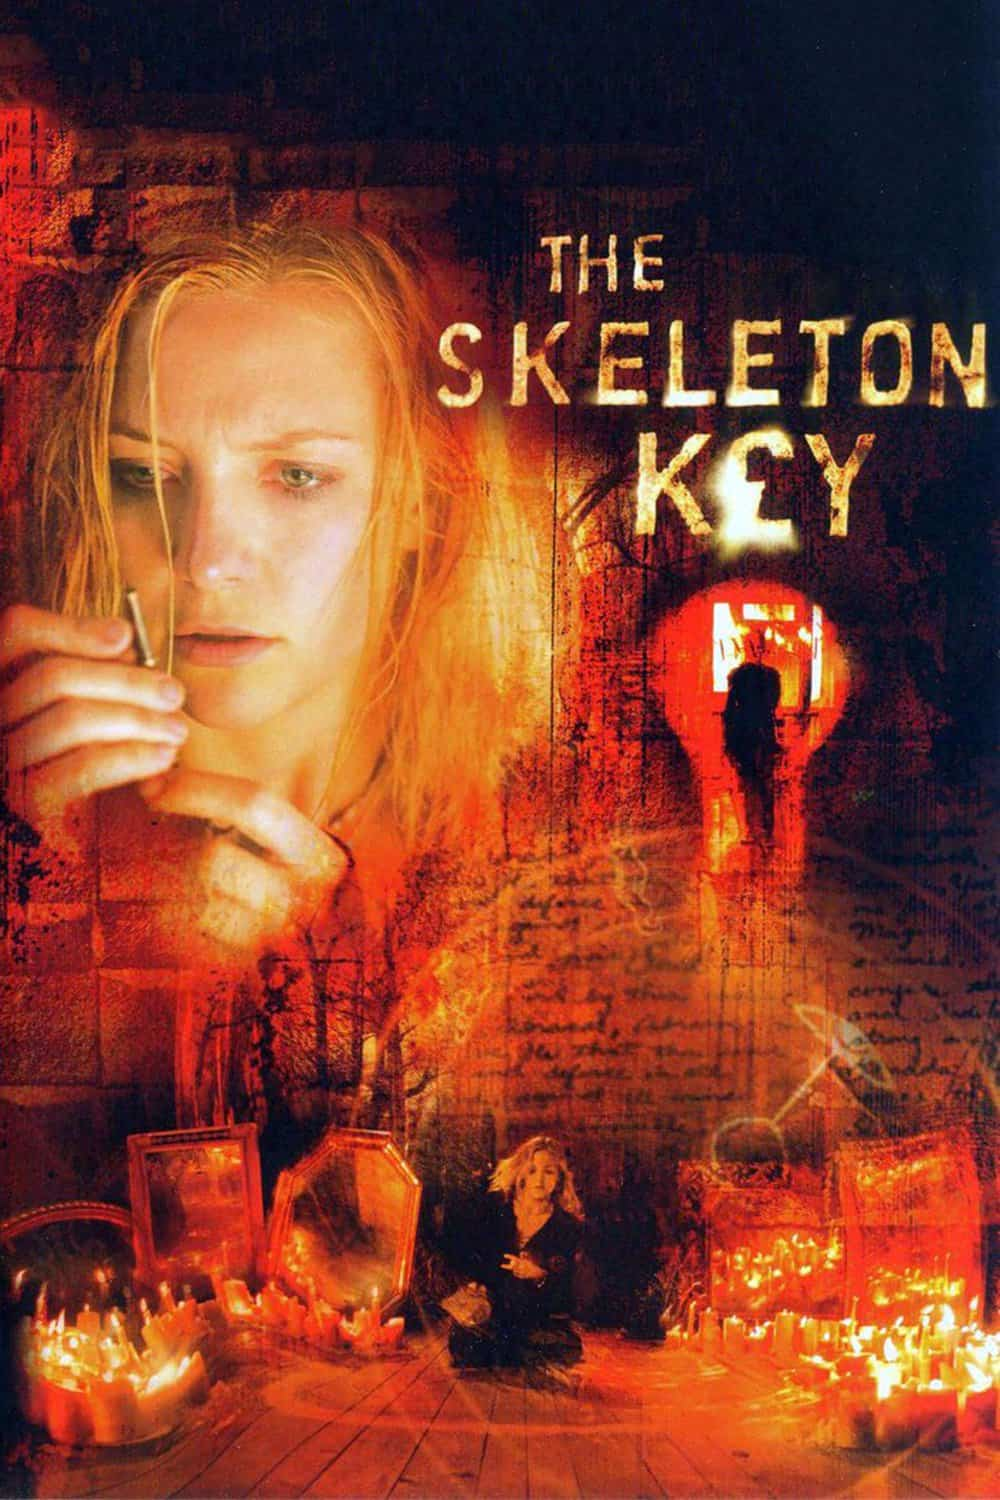 The Skeleton Key, 2005